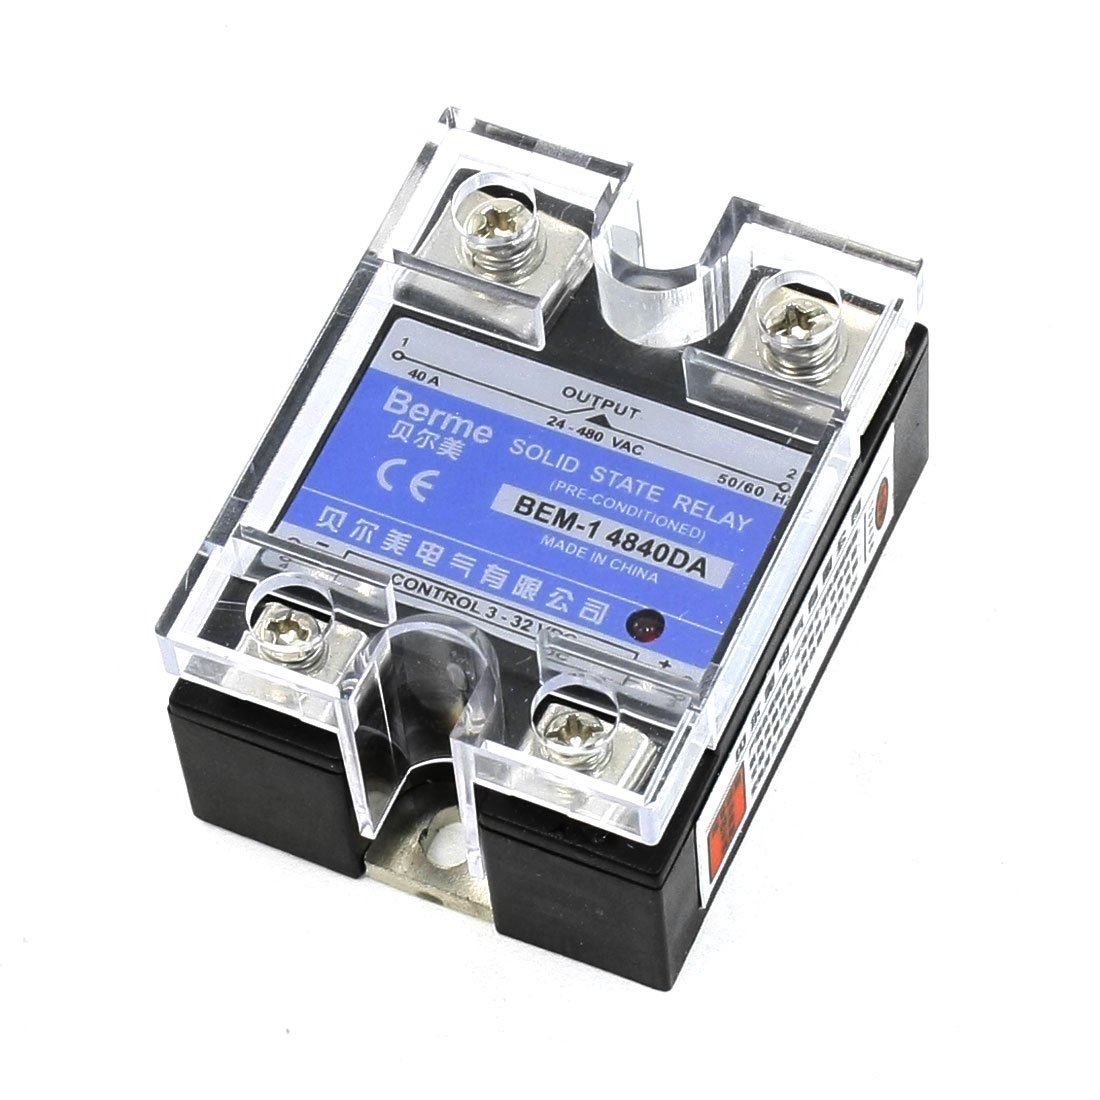 цена на IMC Hot 24-480V AC DC to 3-32VDC Output Single Phase SSR Solid State Relay 40A